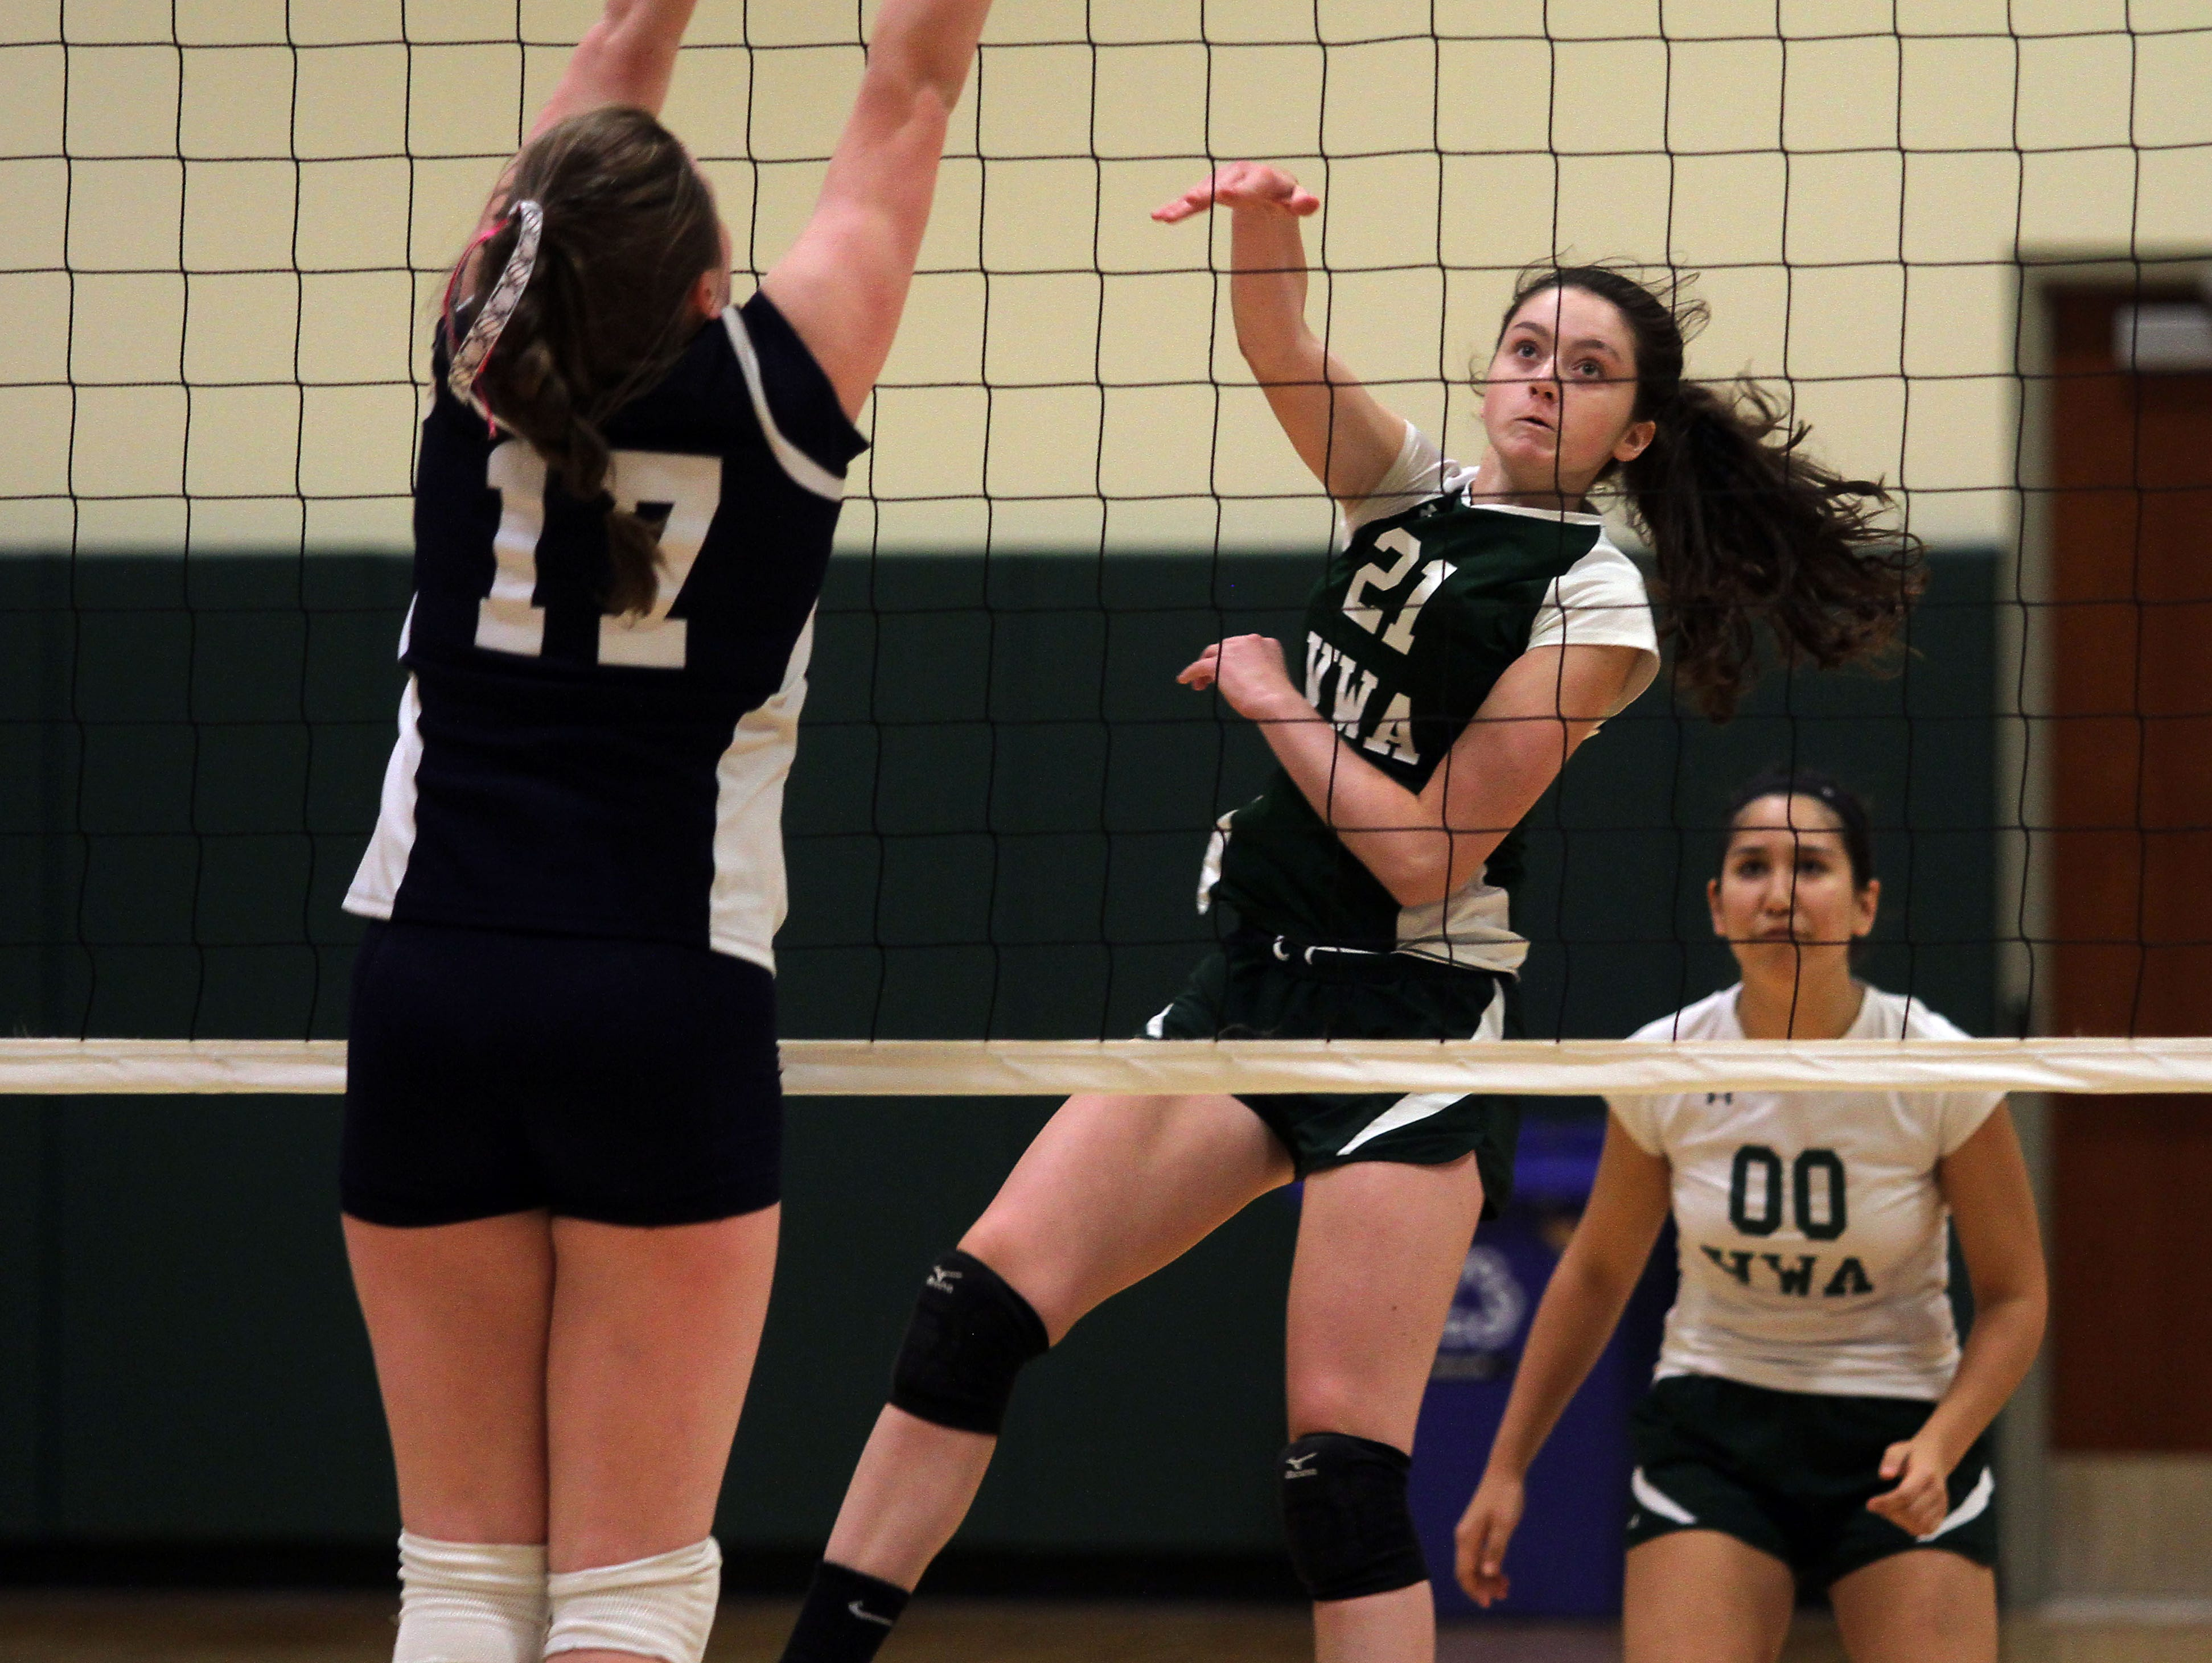 Villa Walsh's Maggie Pietrucha hits a kills vs Morris Catholic in a Morris County Tournament volleyball preliminary matchup. Villa Walsh won the match to move on to the second round. October 2, 2015, Morristown, NJ.